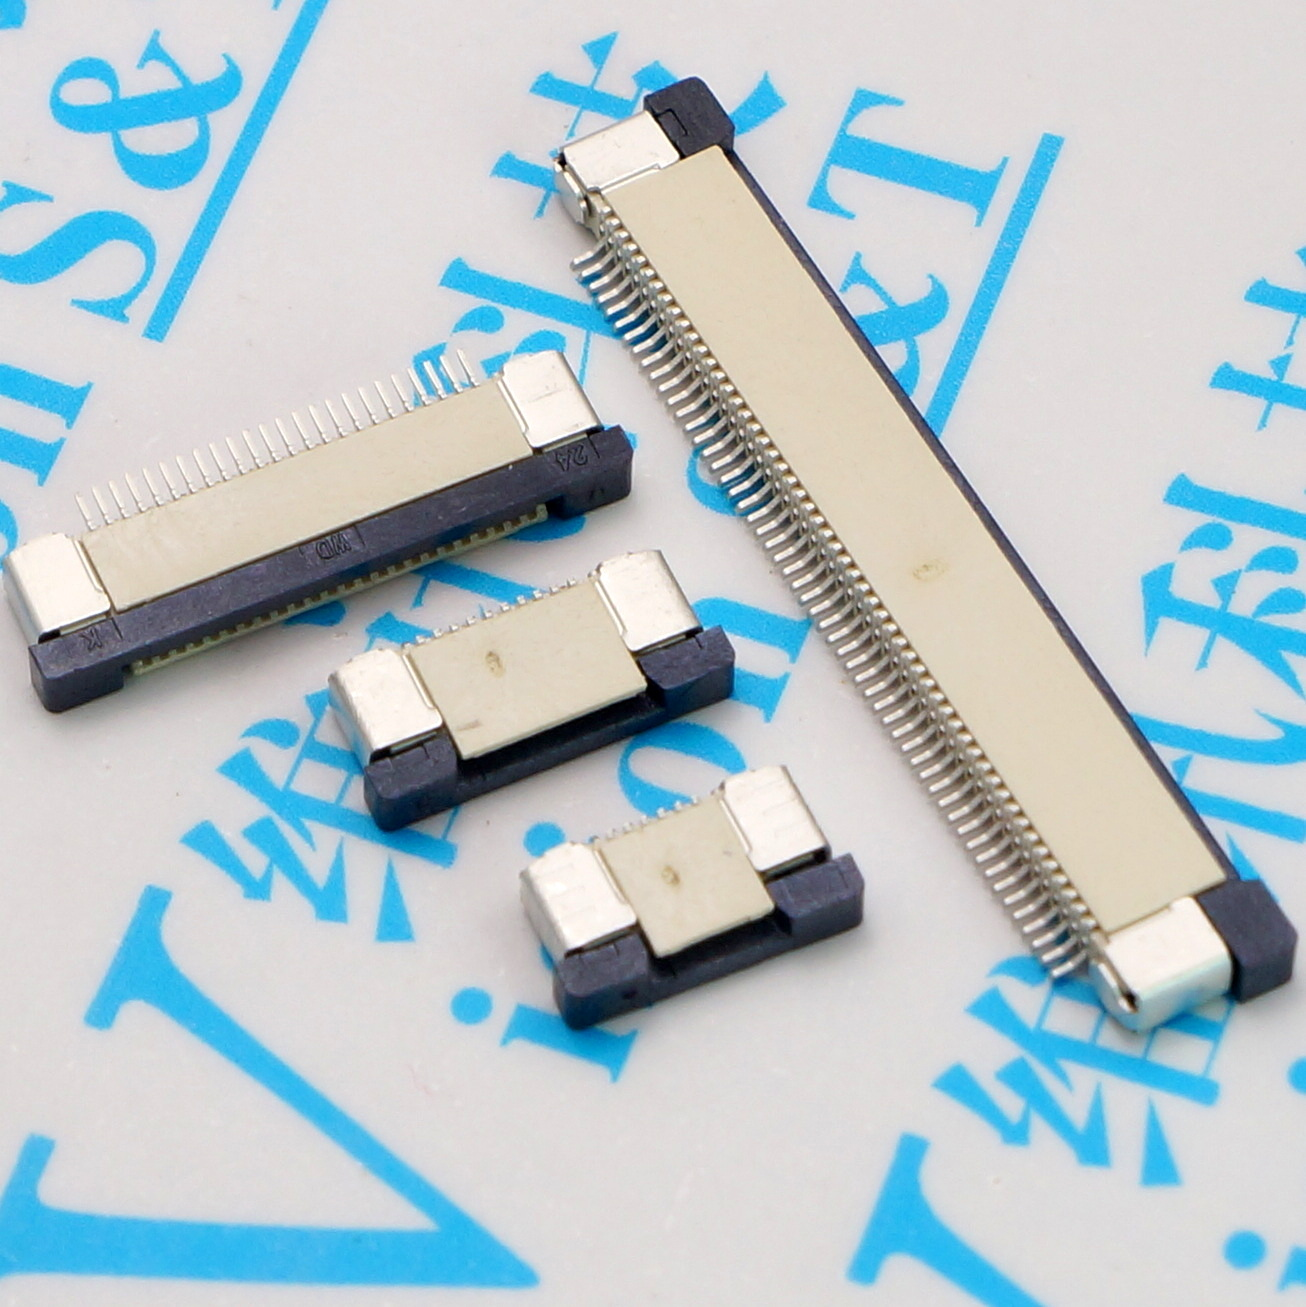 FPC Pitch 0.5mm 4/6/8/10/12/14/16/18/20/22/24/26/28/30/32/36/40/50/54/60Pin Drawer Connector SMT Type Ribbon Flat Top Contact ohm 0603 f 1